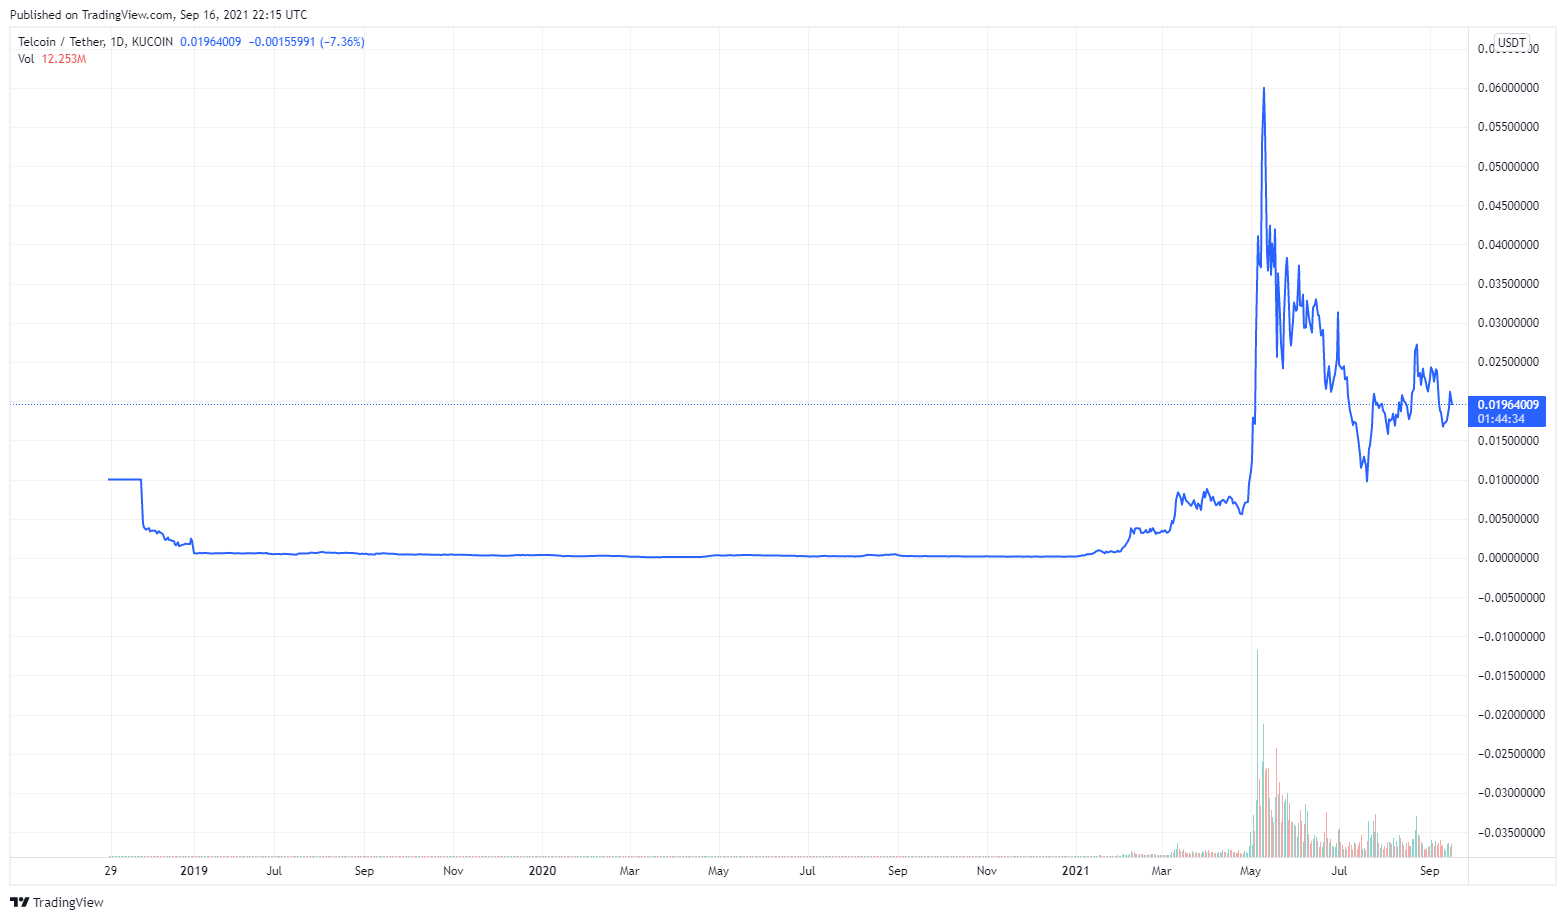 Historical Price of Telcoin by Tradingview